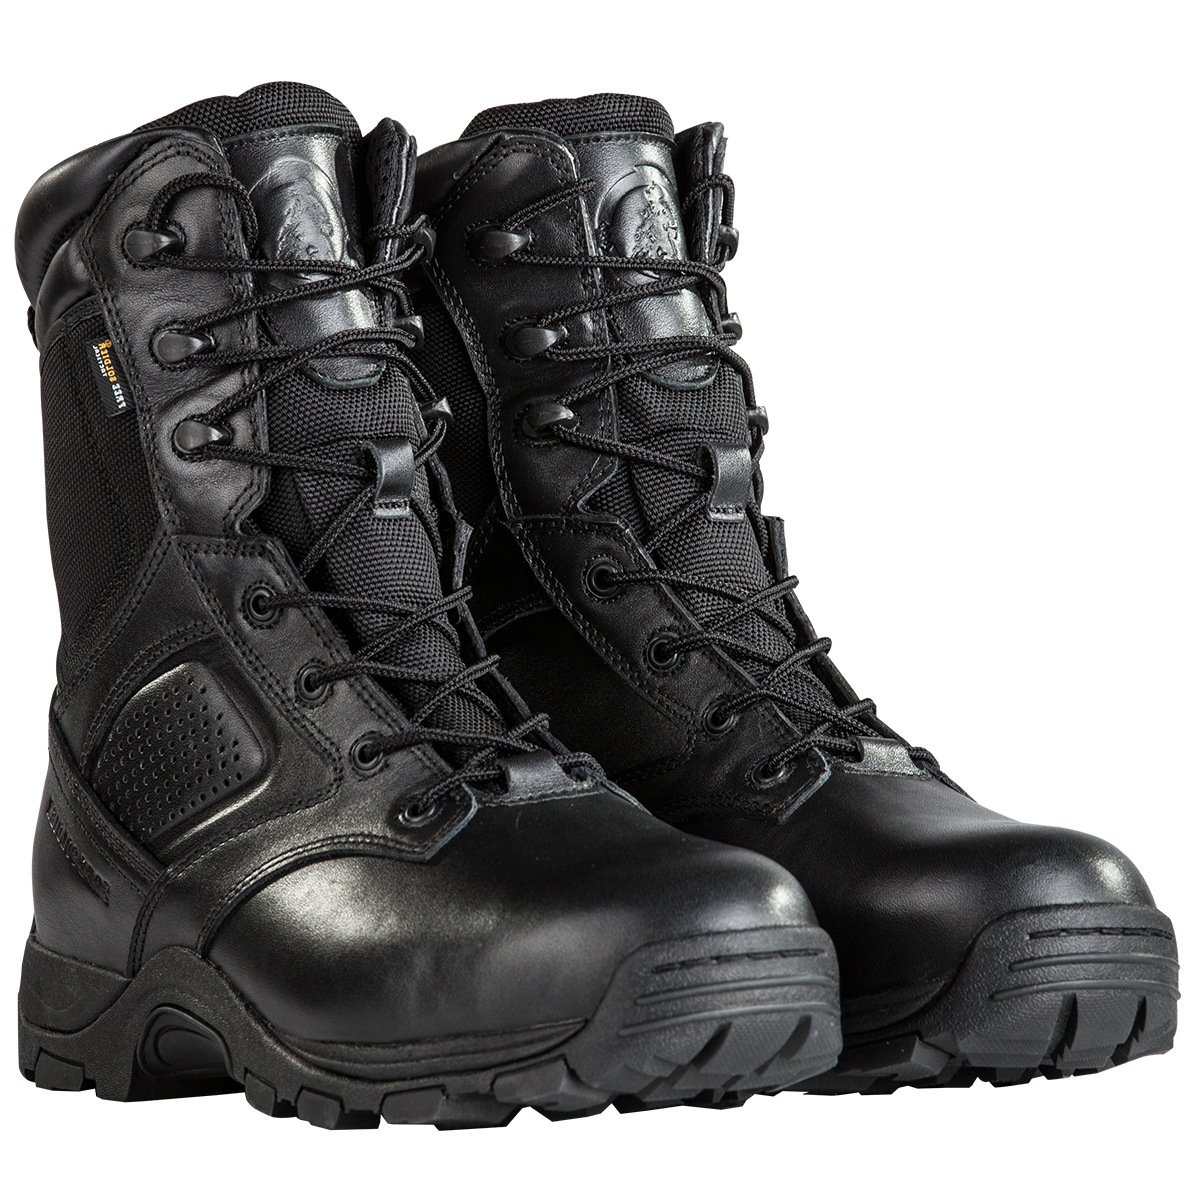 Steel Toe Tactical Boots - FREE SODLIER Waterproof Shoes Penetration Resistant Composite Toe Combat Boot(Black 12.5)